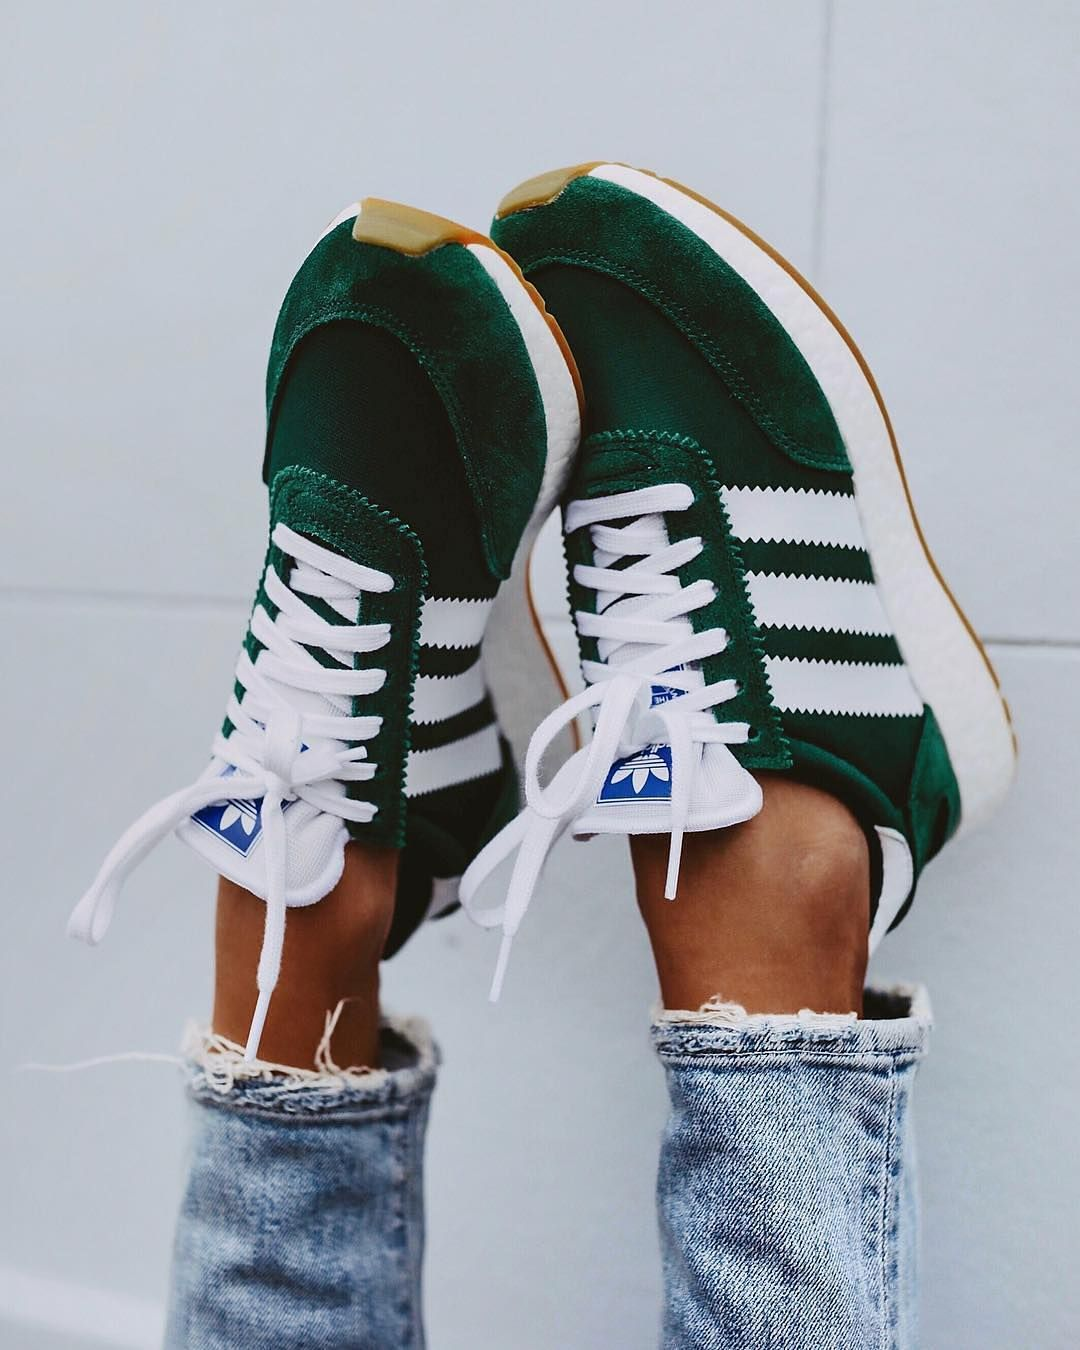 06b51b67cdf Green power 💚 love this shoes  andicsinger  adidasoriginals  love  style   instagood  streetstyle  girl  model  picoftheday  fashion…